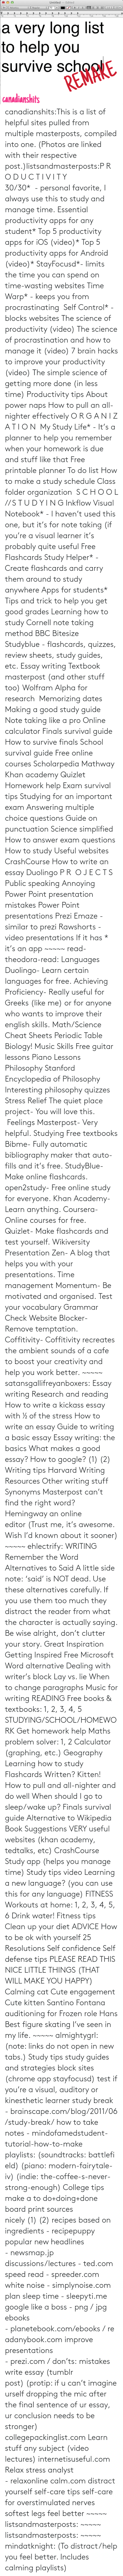 Alright Don: canadianshits:This is a list of helpful sites pulled from multiple masterposts, compiled into one. (Photos are linked with their respective post.)listsandmasterposts:P R O D U C T I V I T Y 30/30*-personal favorite, I always use this to study and manage time. Essential productivity apps for any student* Top 5 productivity apps for iOS (video)* Top 5 productivity apps for Android (video)* StayFocusd*- limits the time you can spend on time-wasting websites Time Warp* - keeps you from procrastinating Self Control* - blocks websites The science of productivity (video) The science of procrastination and how to manage it (video) 7 brain hacks to improve your productivity (video) The simple science of getting more done (in less time) Productivity tips About power naps How to pull an all-nighter effectively O R G A N I Z A T I O N My Study Life*- It's a planner to help you remember when your homework is due and stuff like that Free printable planner To do list How to make a study schedule Class folder organization S C H O O L // S T U D Y I N G Inkflow Visual Notebook*-I haven't used this one, but it's for note taking (if you're a visual learner it's probably quite useful Free Flashcards Study Helper*- Create flashcards and carry them around to study anywhere Apps for students* Tips and trick to help you get good grades Learning how to study Cornell note taking method BBC Bitesize Studyblue- flashcards, quizzes, review sheets, study guides, etc. Essay writing Textbook masterpost(and other stuff too) Wolfram Alphafor research Memorizing dates Making a good study guide Note taking like a pro Online calculator Finals survival guide How to survive finals School survival guide Free online courses Scholarpedia Mathway Khan academy Quizlet Homework help Exam survival tips Studying for an important exam Answering multiple choice questions Guide on punctuation Science simplified How to answer exam questions How to study Useful websites CrashCourse How to write an essay 